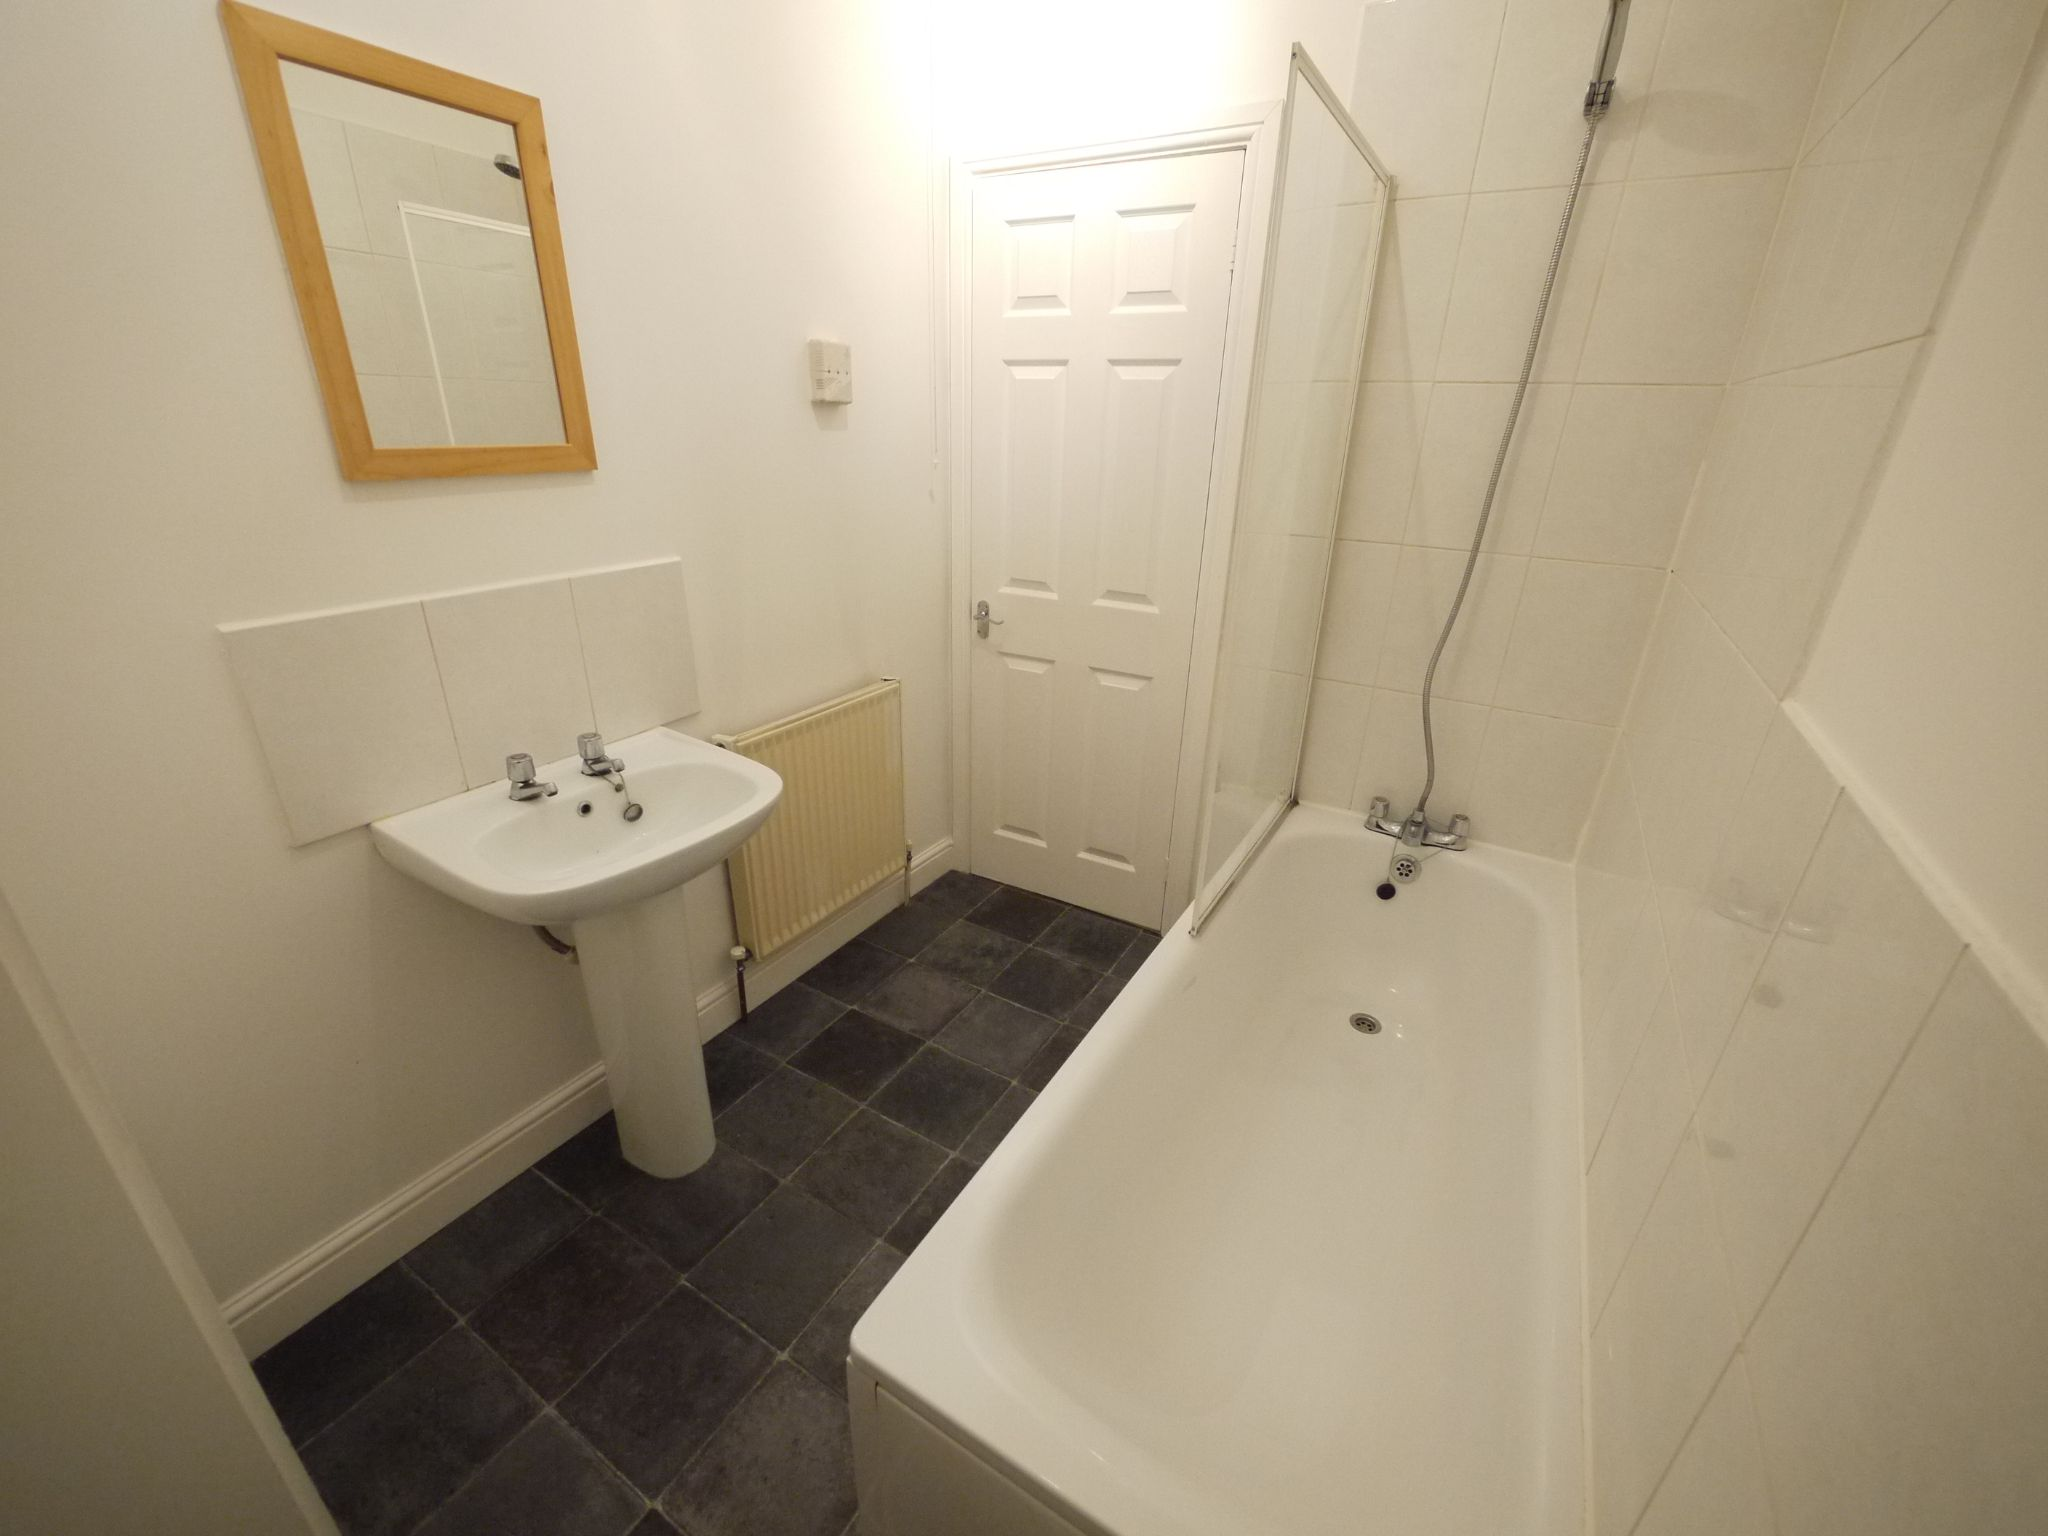 2 bedroom mid terraced house SSTC in Brighouse - Photograph 5.